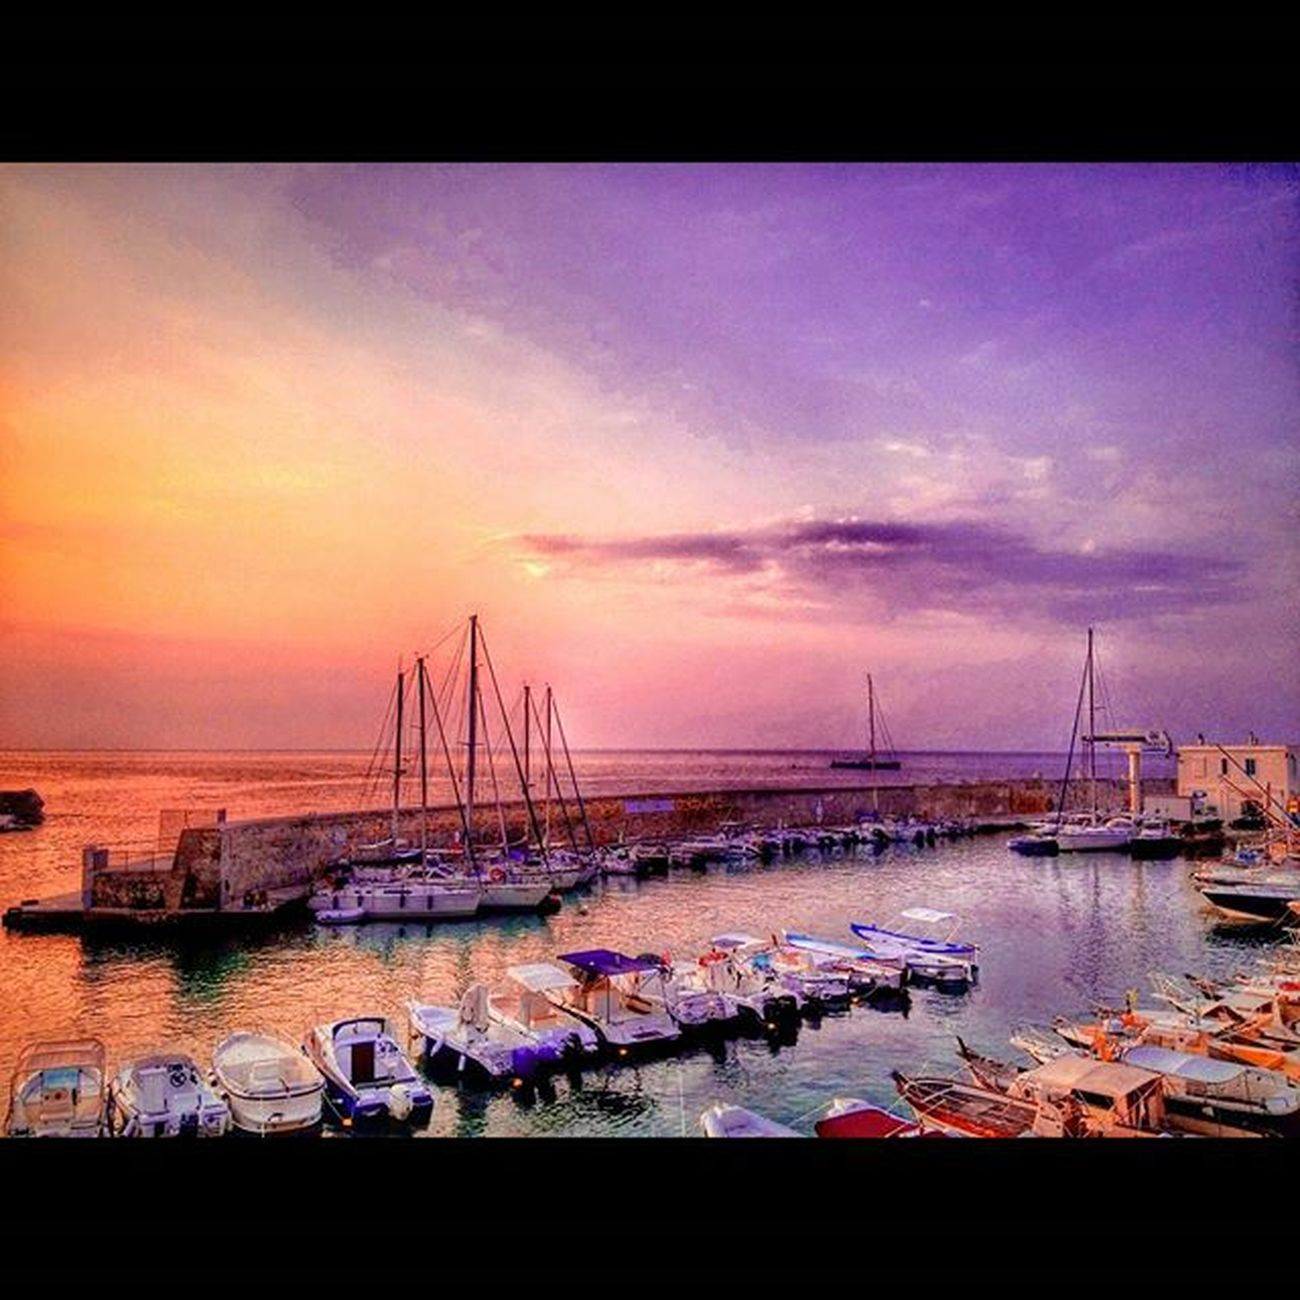 Salento Nature Water Sea Mare Dawn Sunrise Alba Sky Cielo Colorful Instaday Picoftheday Boats Port Tricase Ig_salento Ig_lecce Ig_puglia Red Blue Wonderful Beautiful Instagood Italy acqua life natura purple